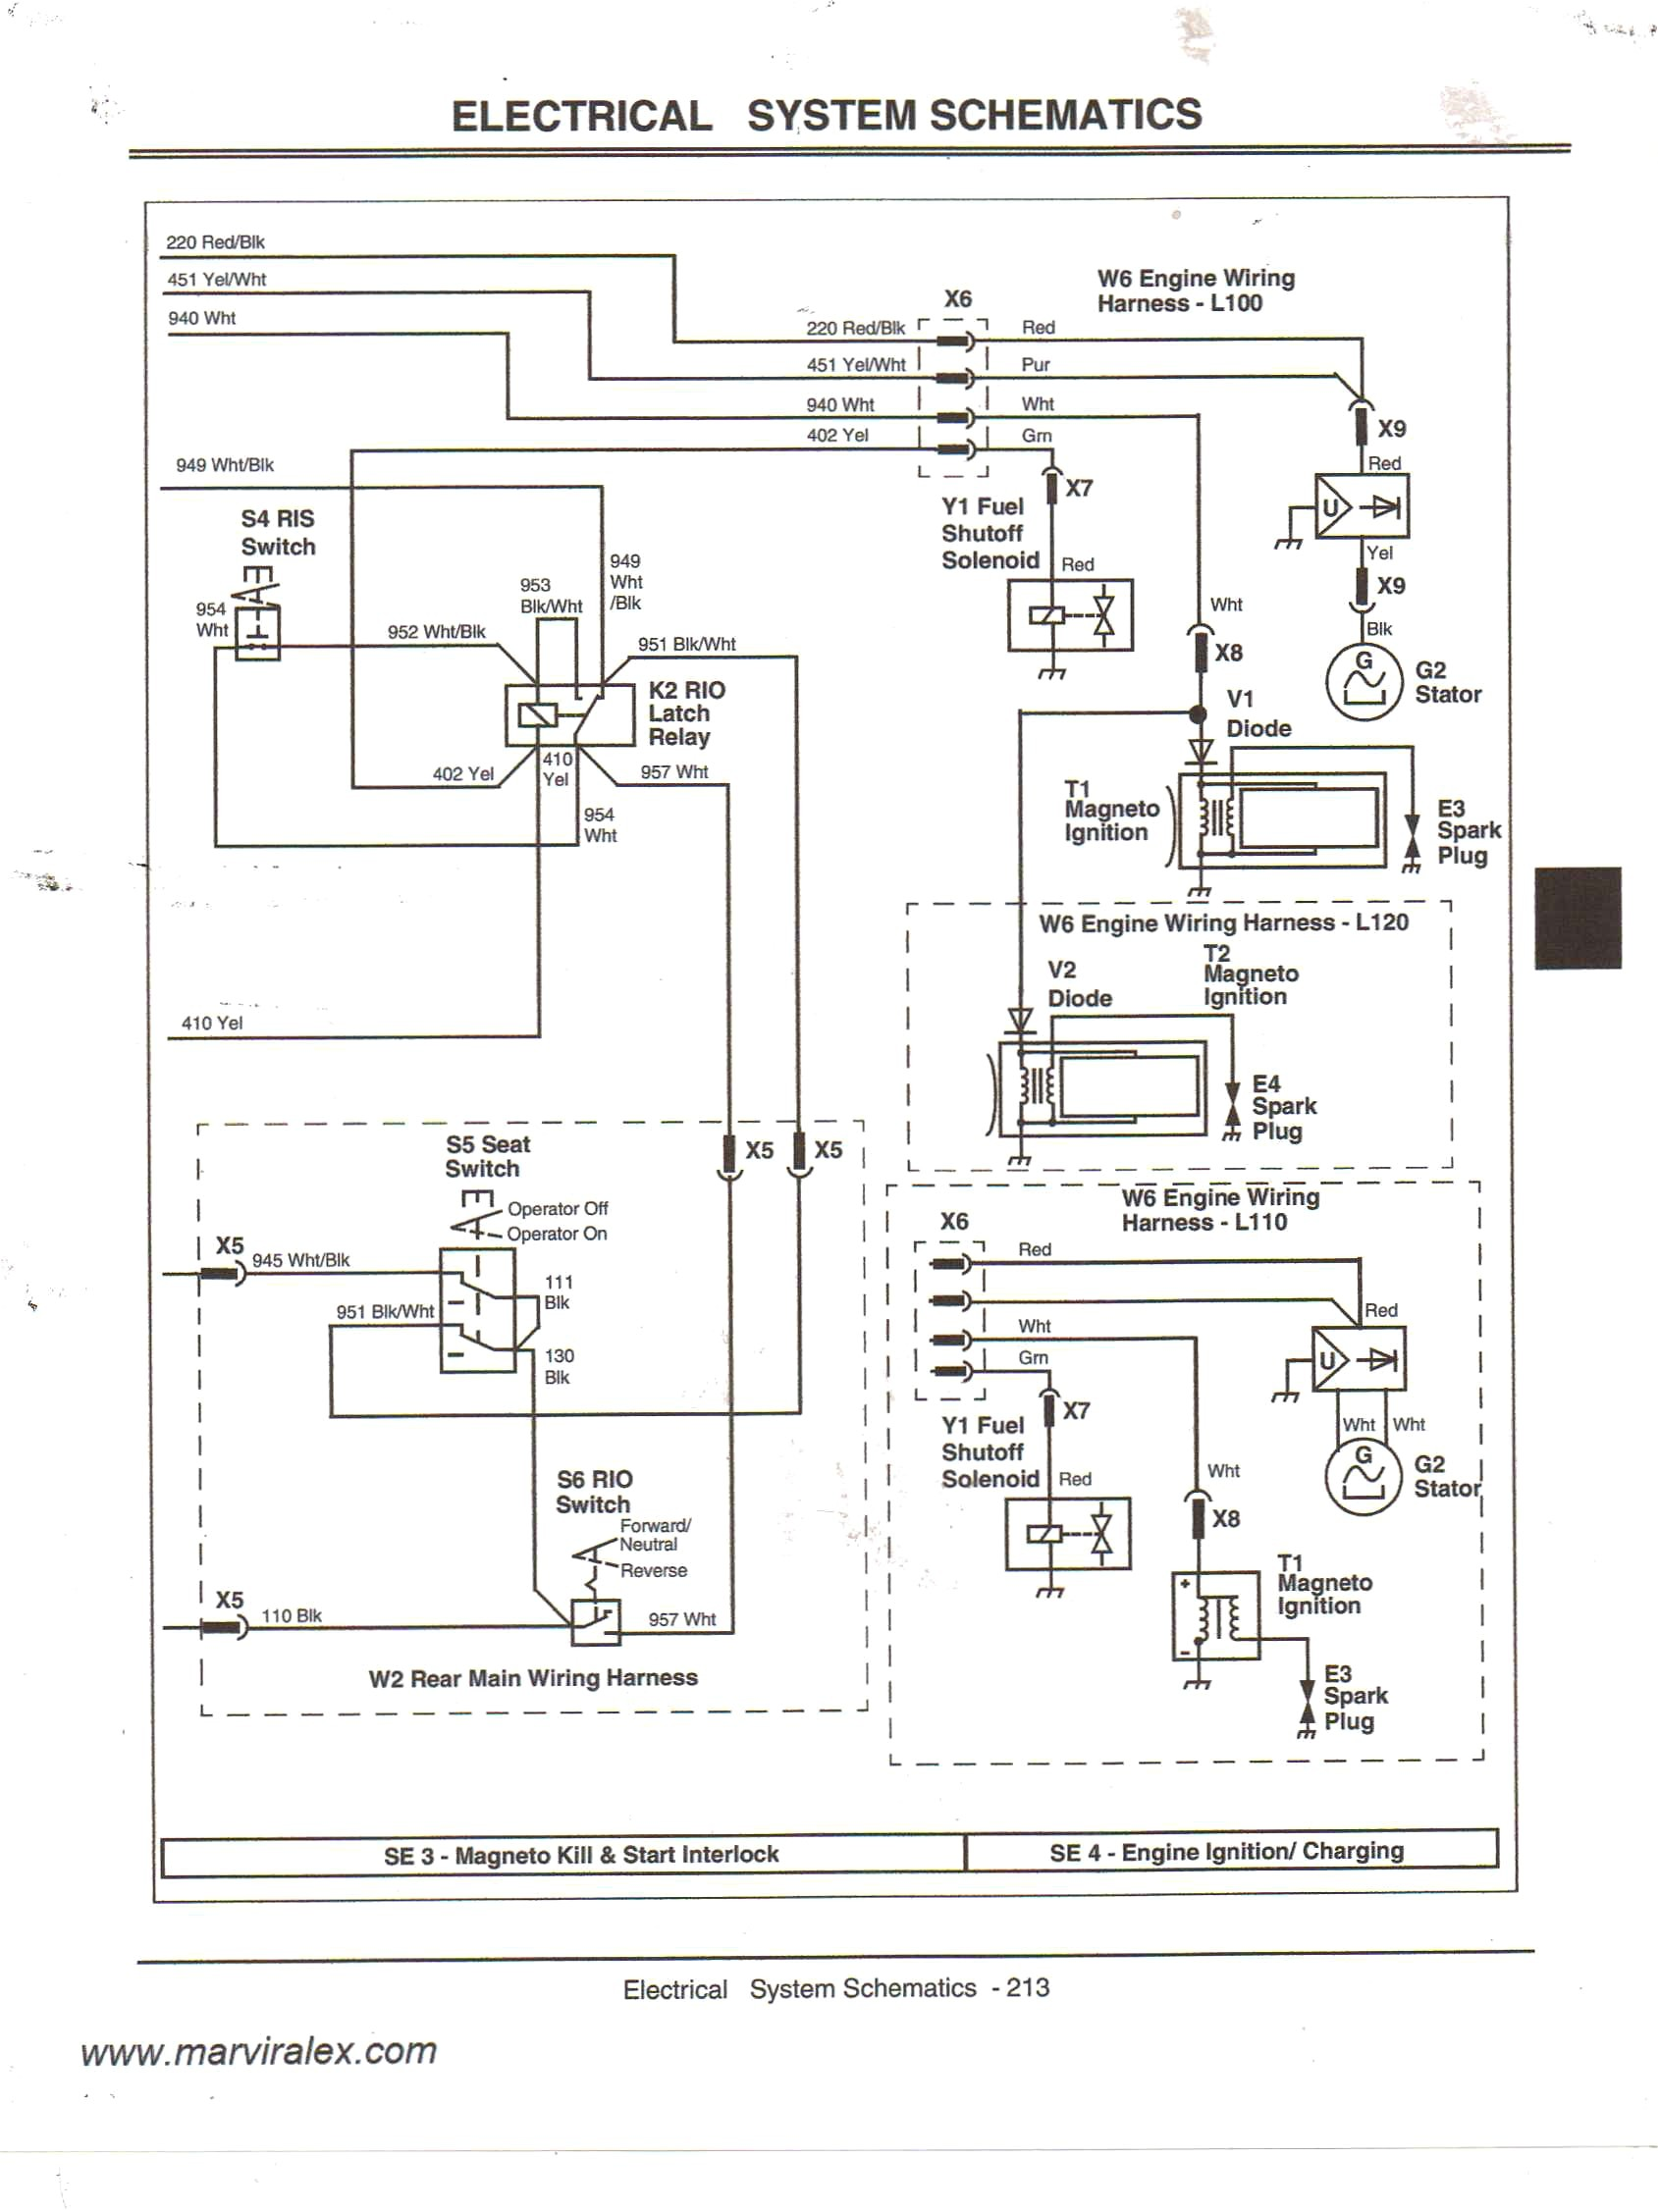 John Deere Wiring Diagrams Stx 38 Wiring Diagram Wiring Diagram Of John Deere Wiring Diagrams